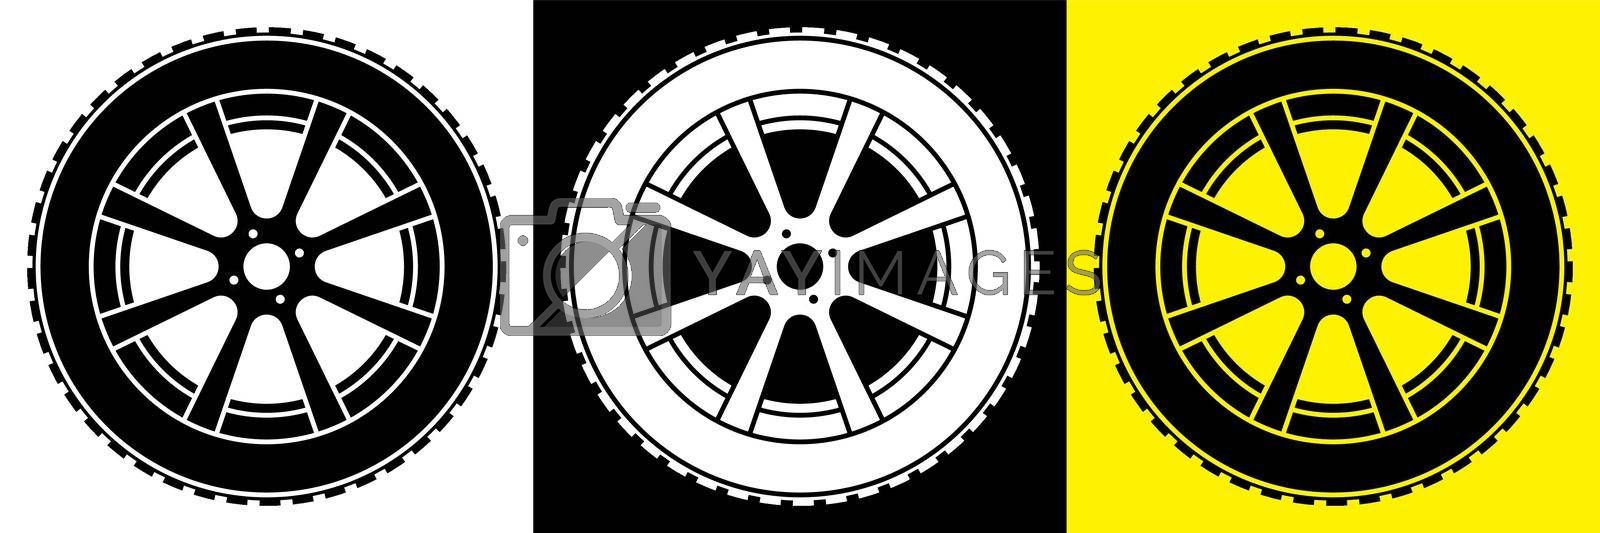 wheel with tire and winter rubber tread. Winter tires for car. Driving on slippery road. Driving safety. Vector in flat style by RNko